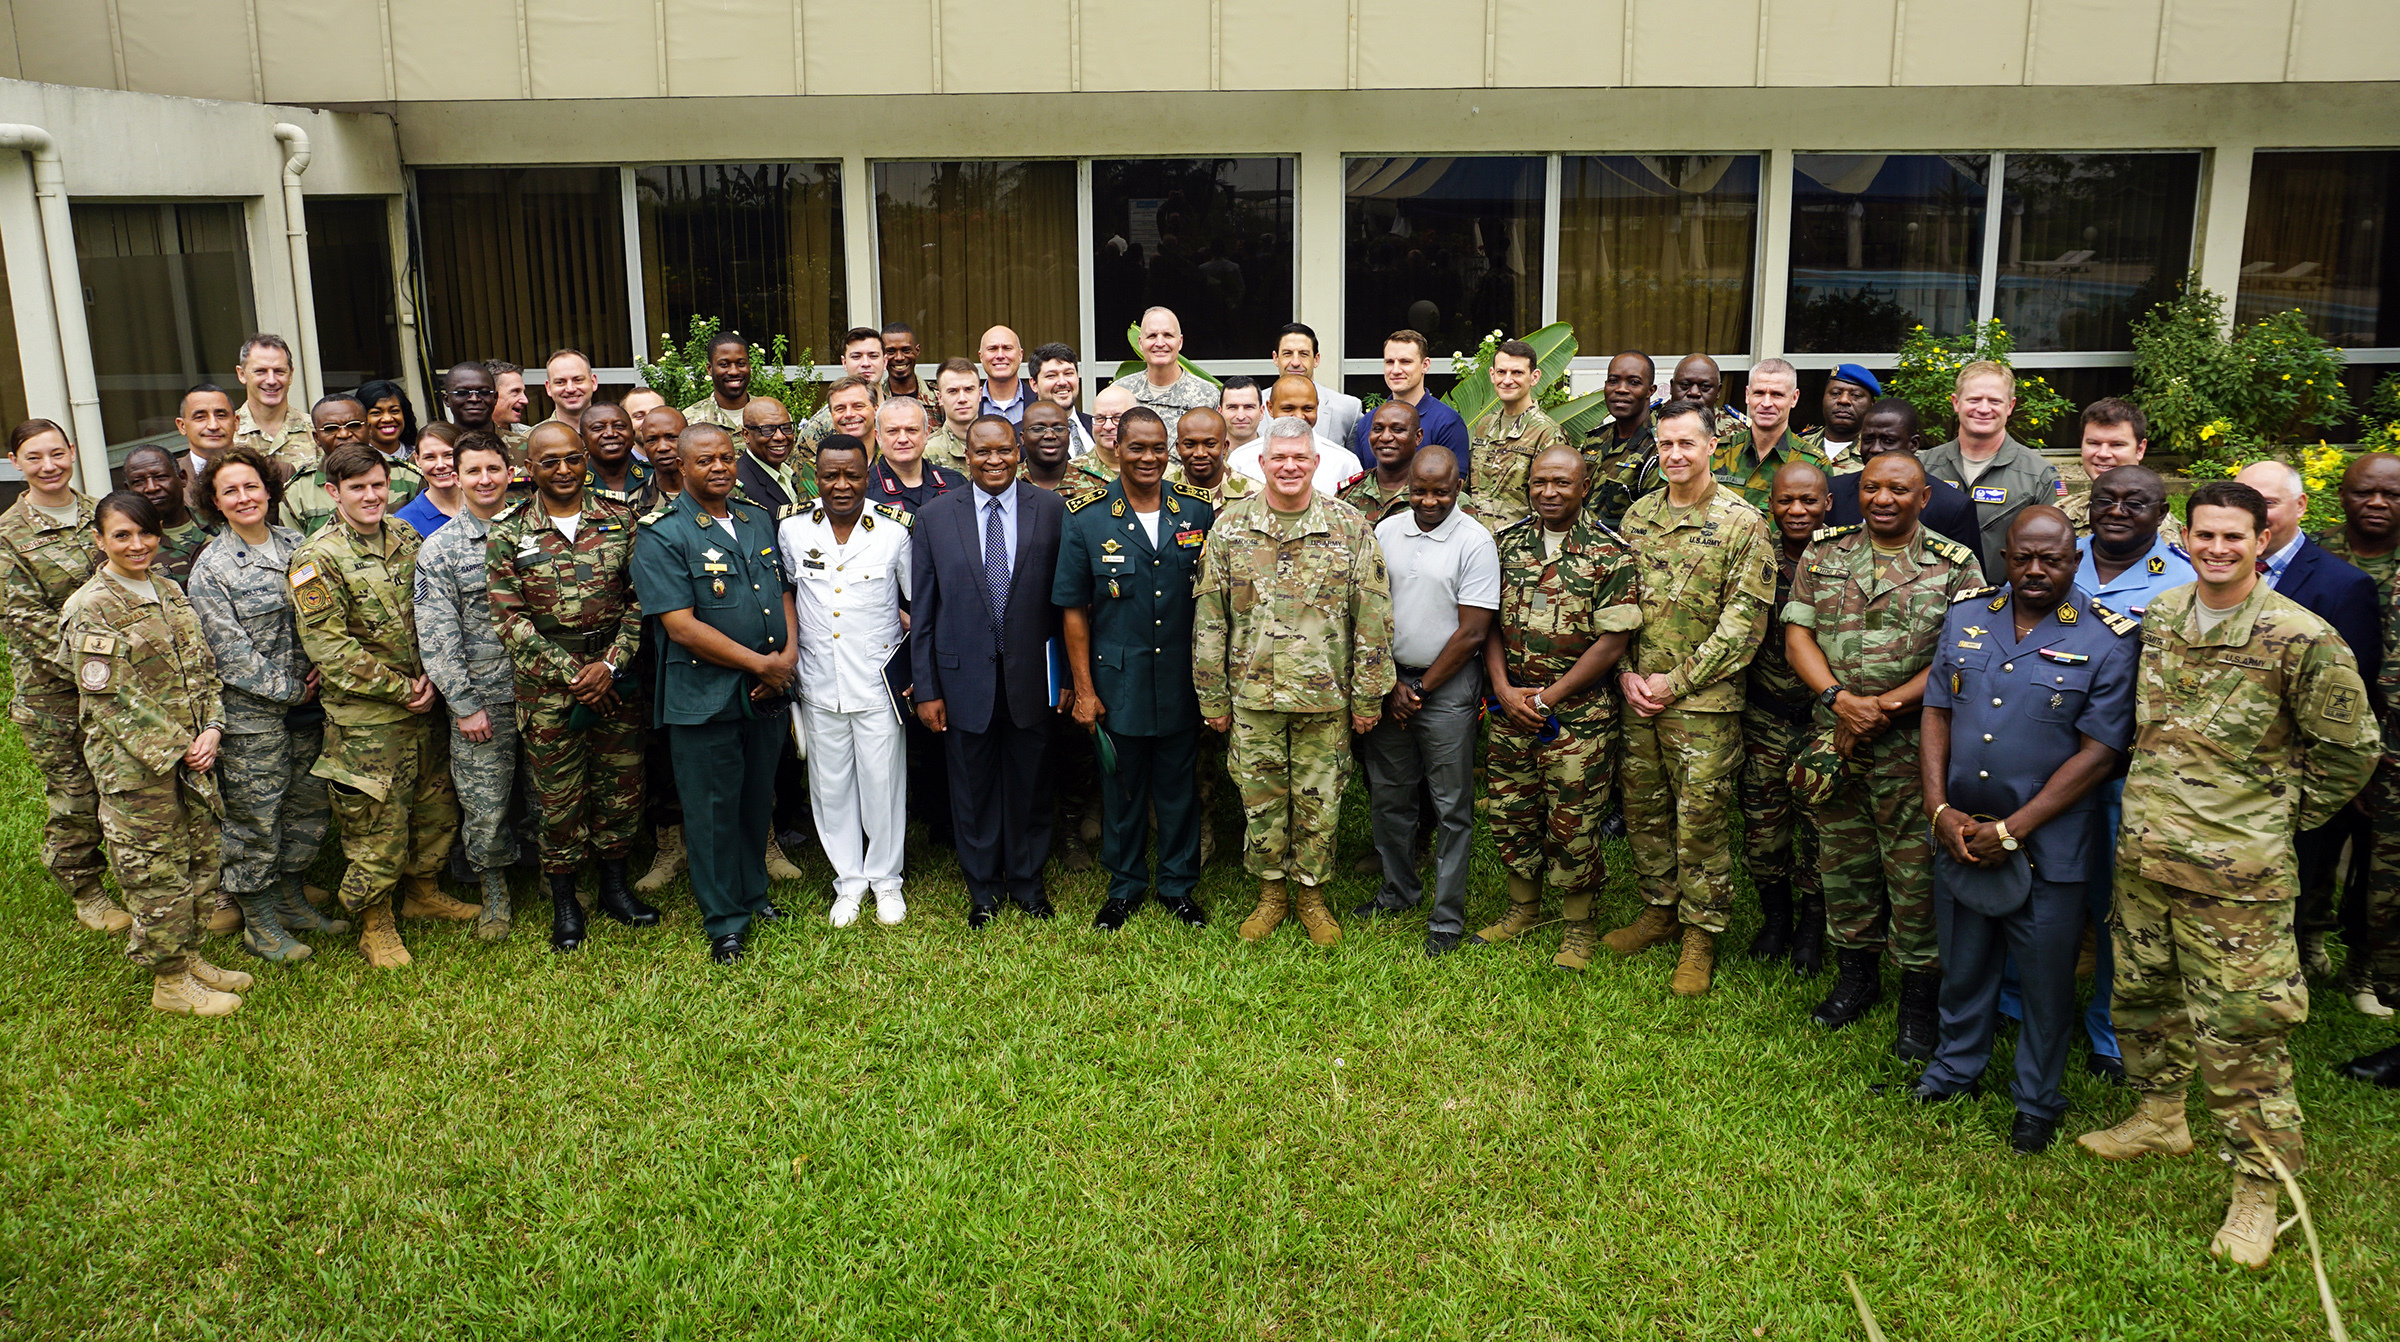 interracial marriages essay germany